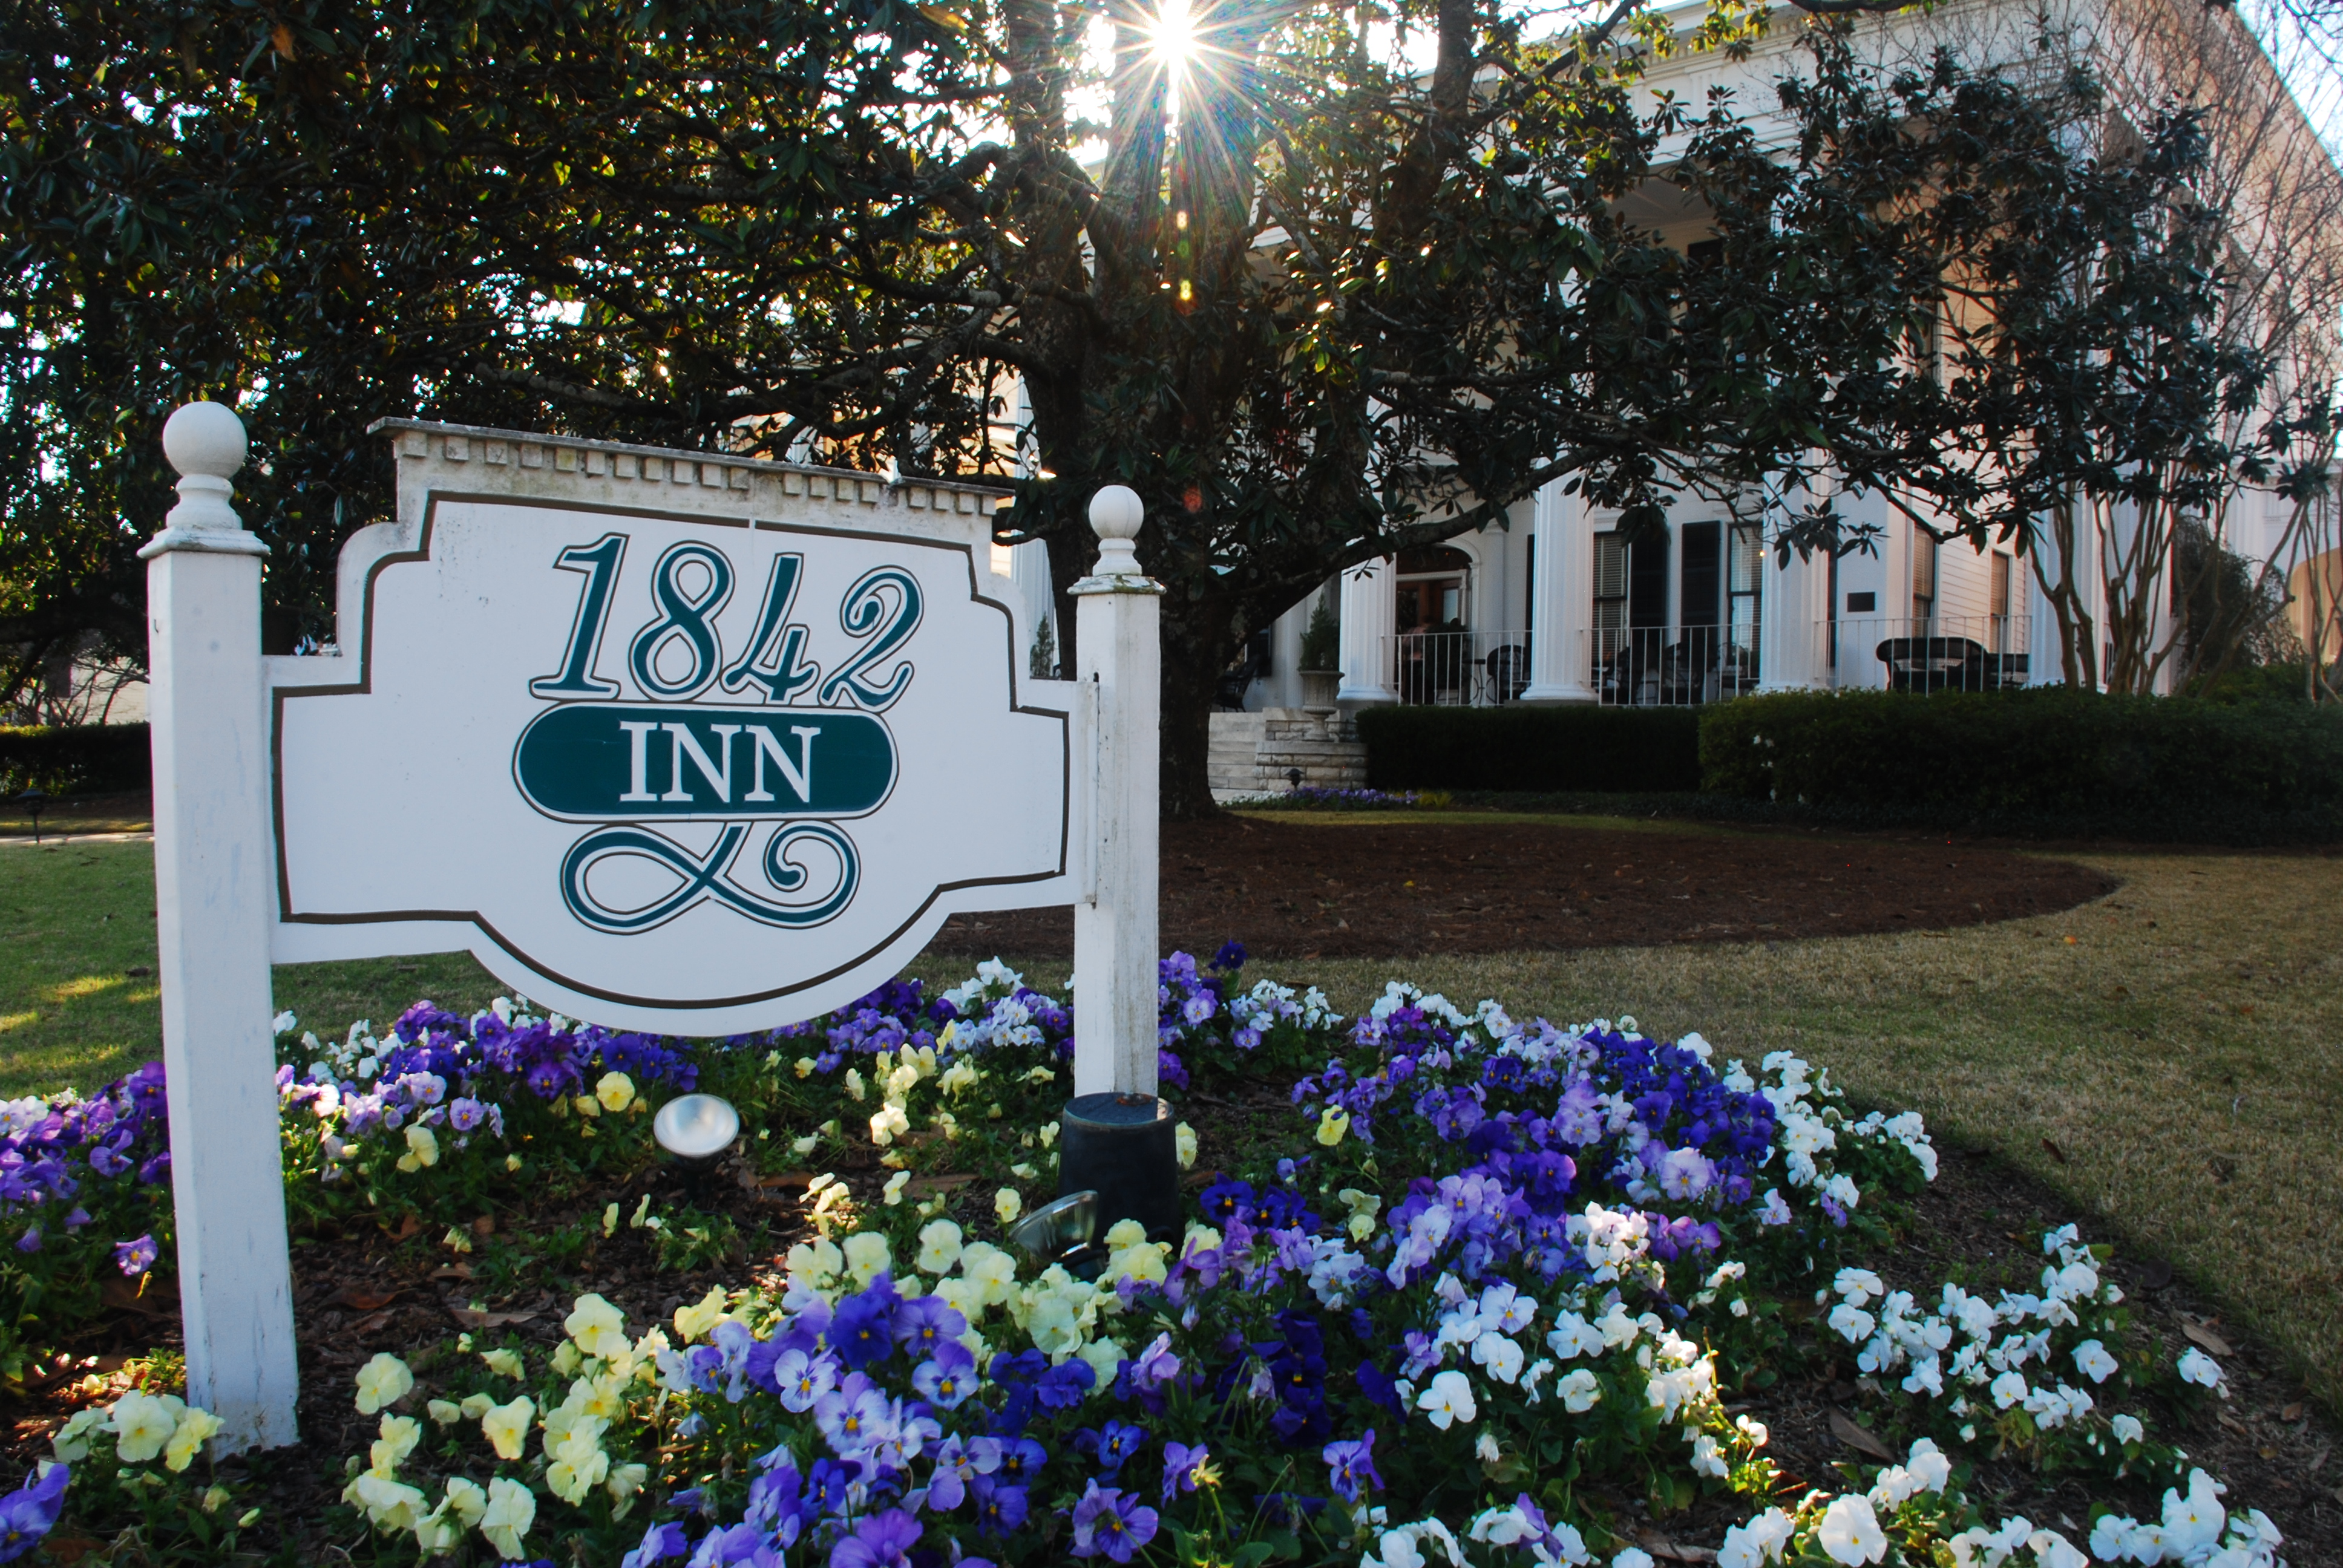 1842 Inn - A Macon Bed & Breakfast